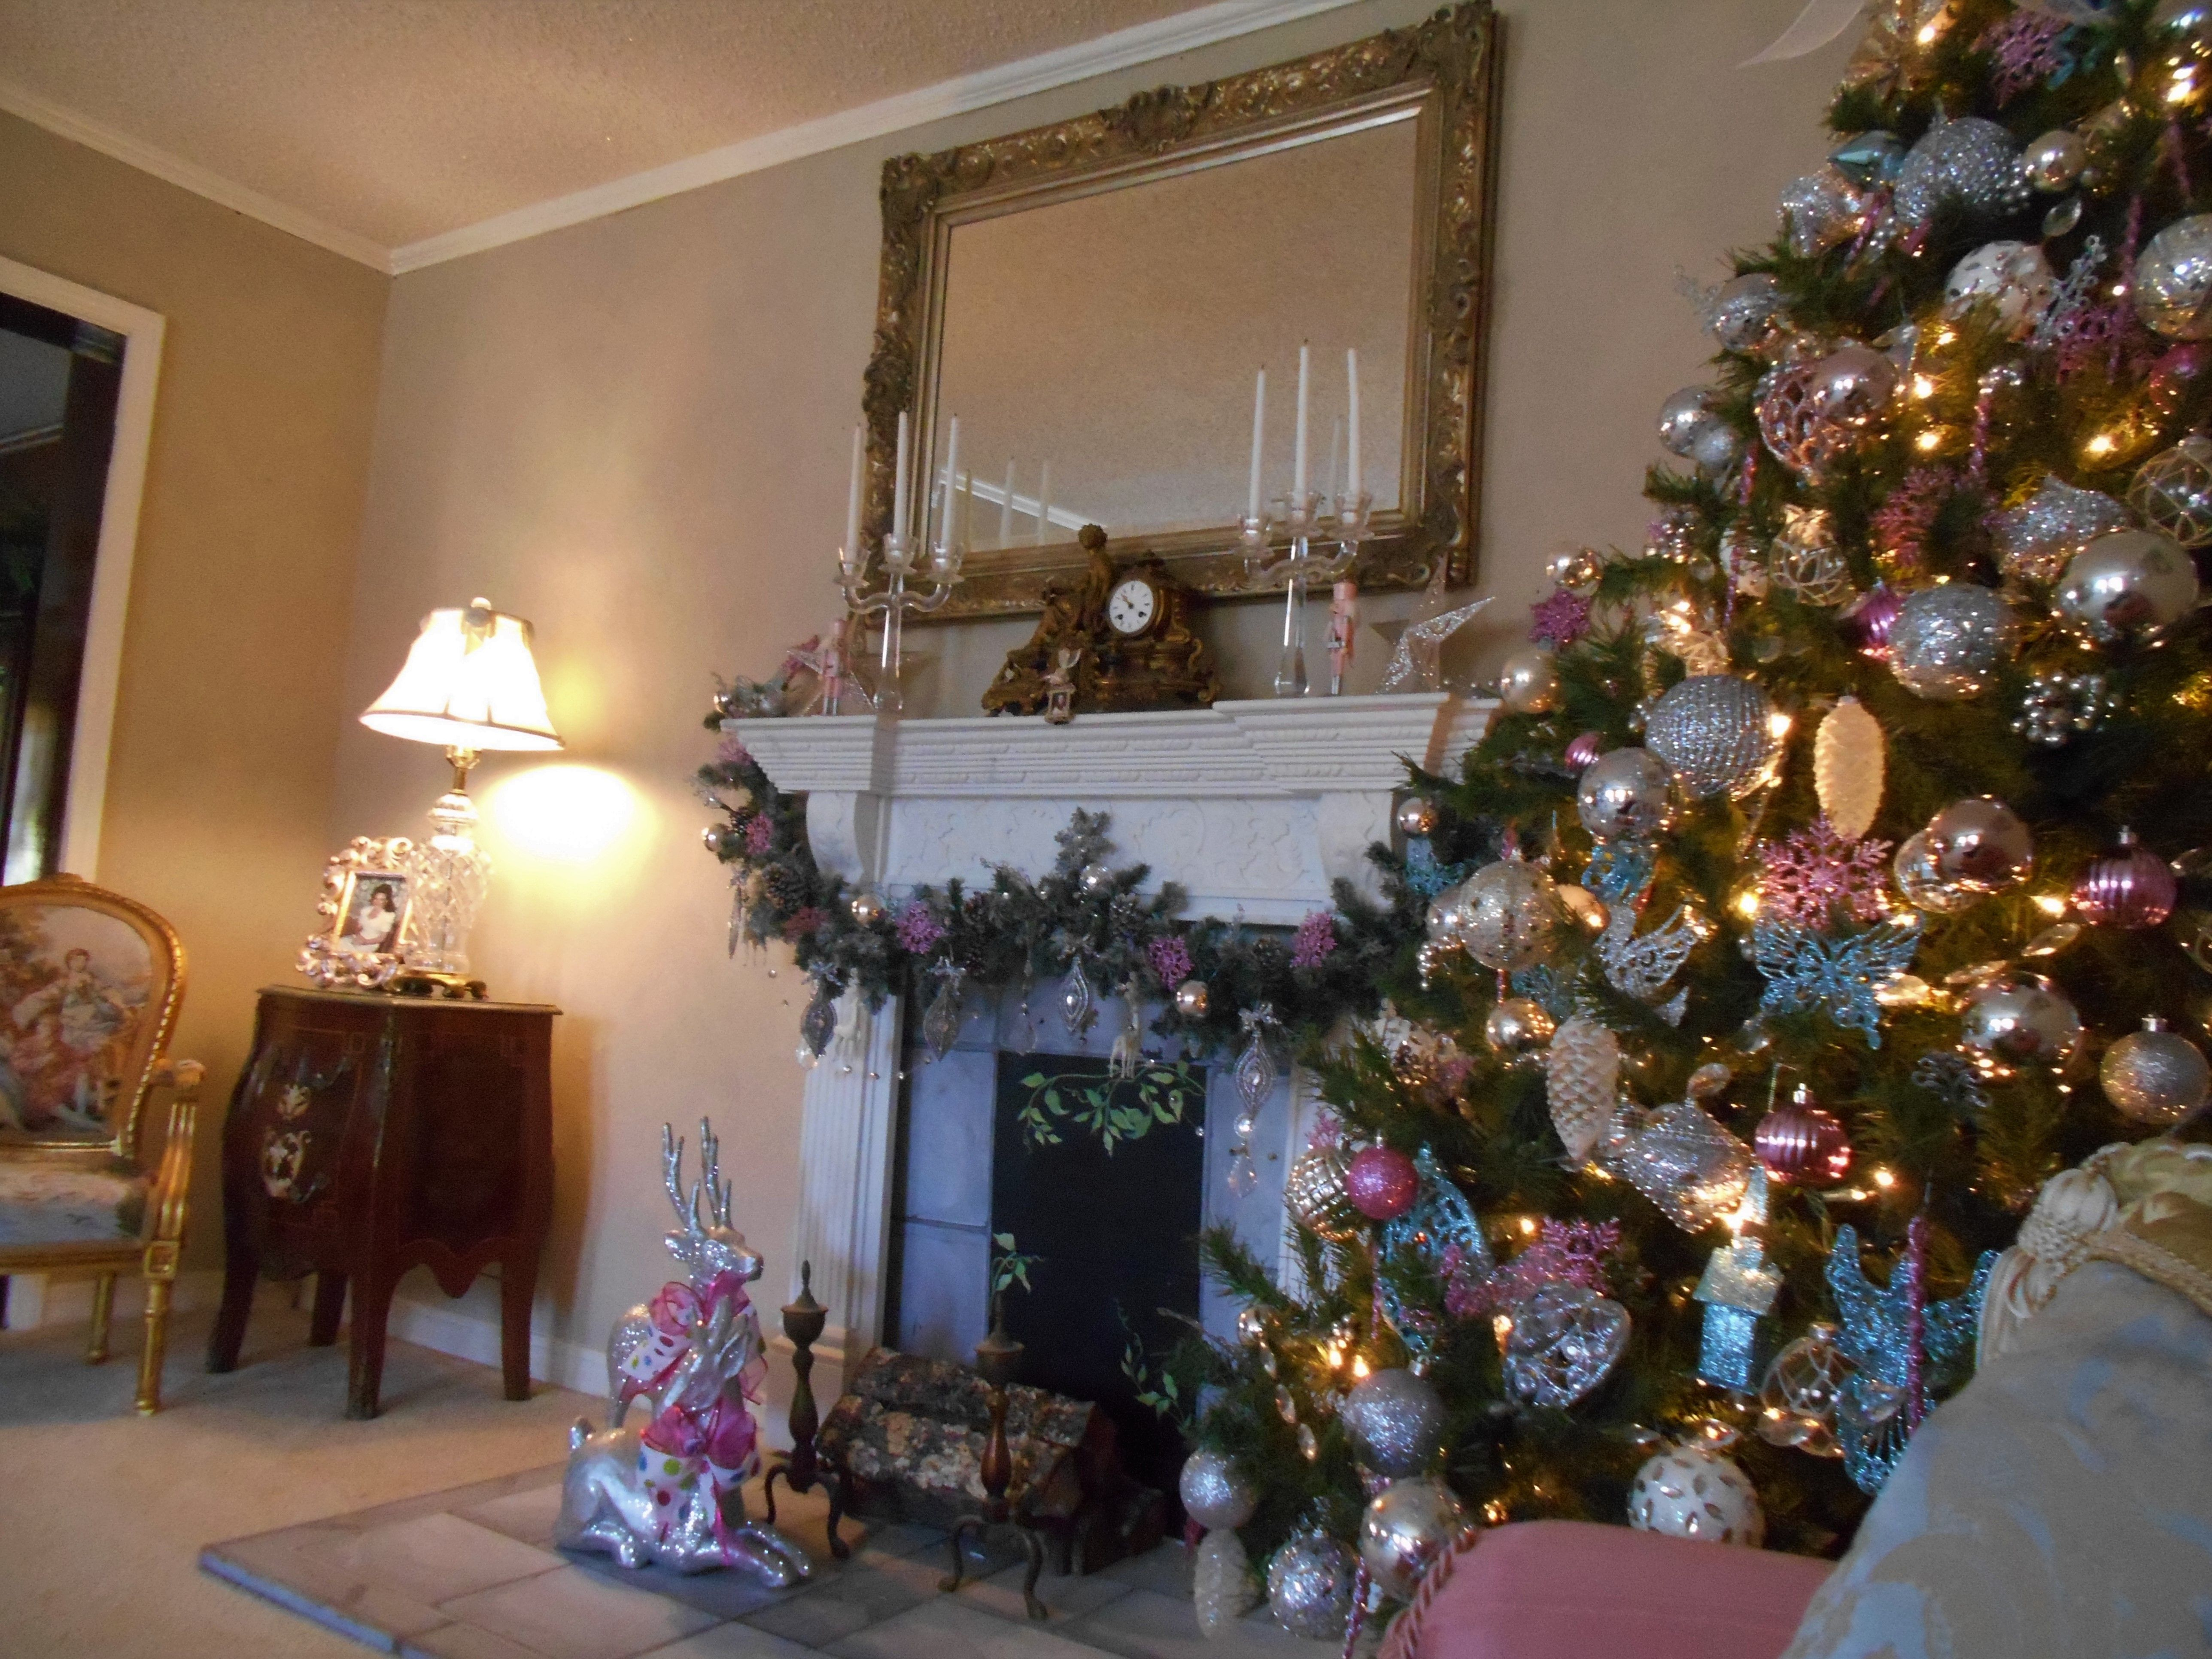 Christmas Tree by Fireplace Christmas Pinterest